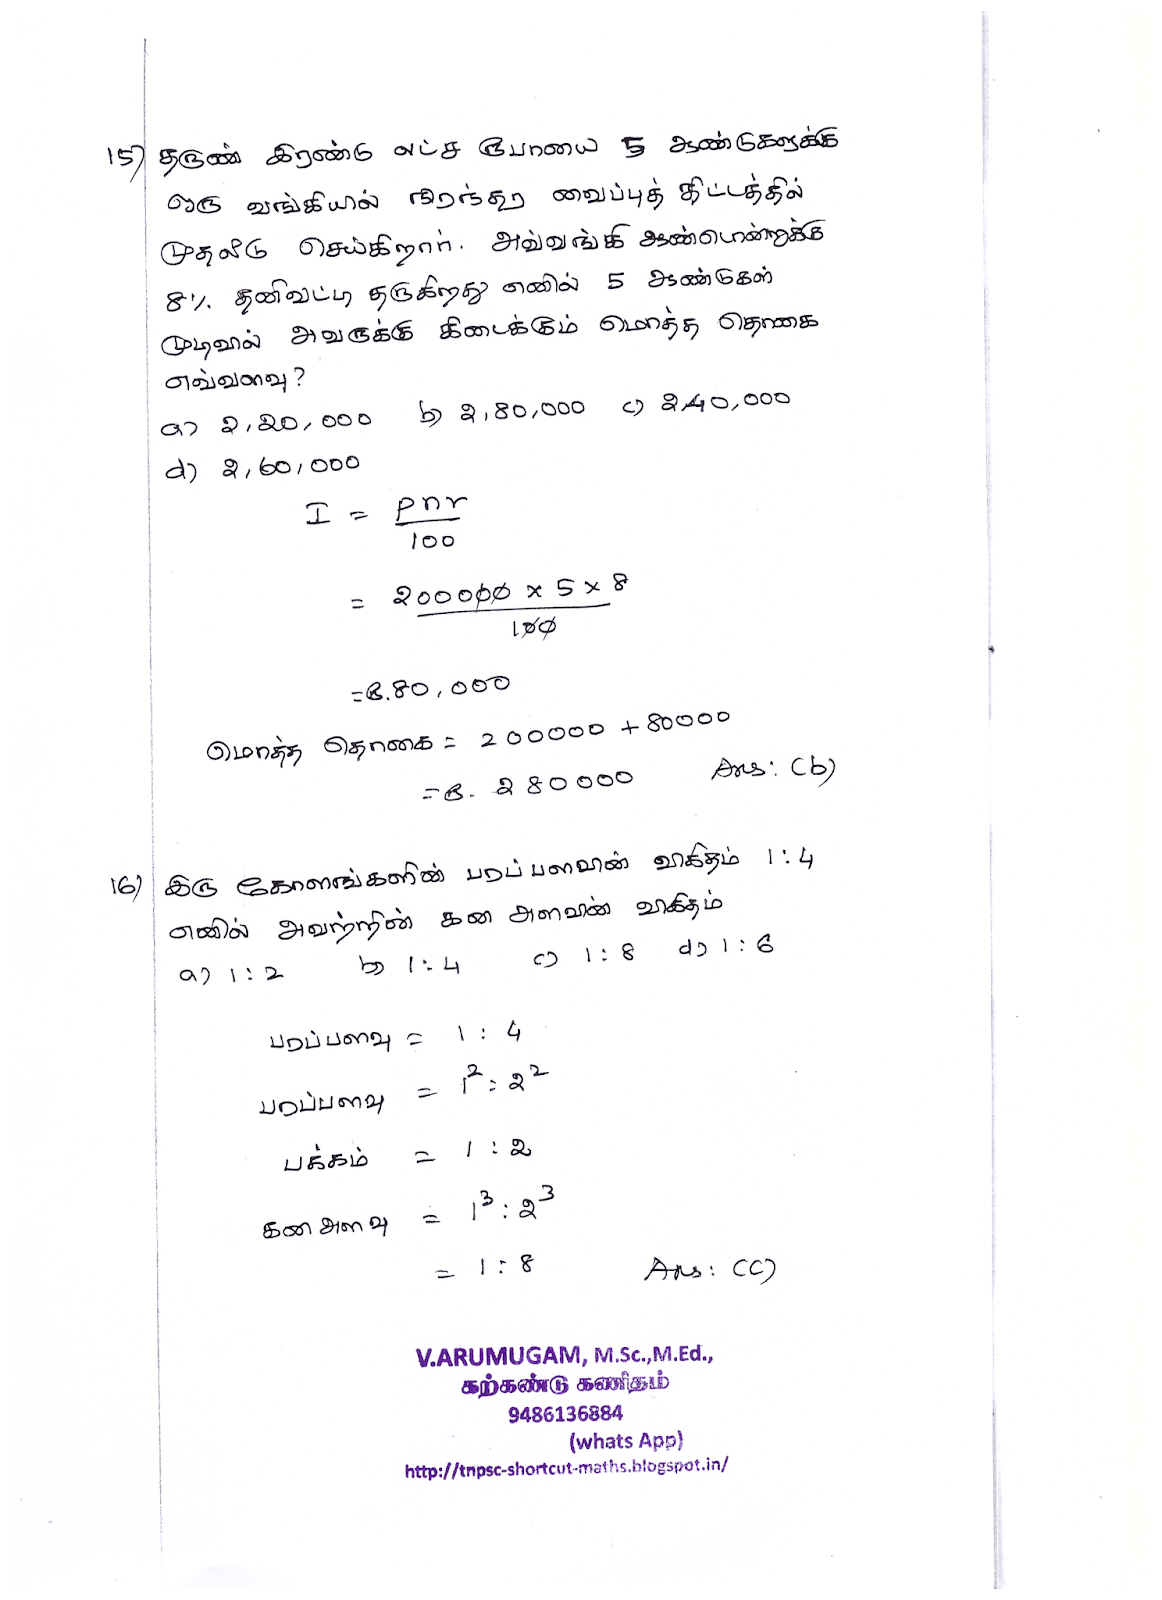 TNPSC – 2019 - Librarian in various Departments in various services in Tamil Nadu EXAM - EXAM DATE: 30.03.2019